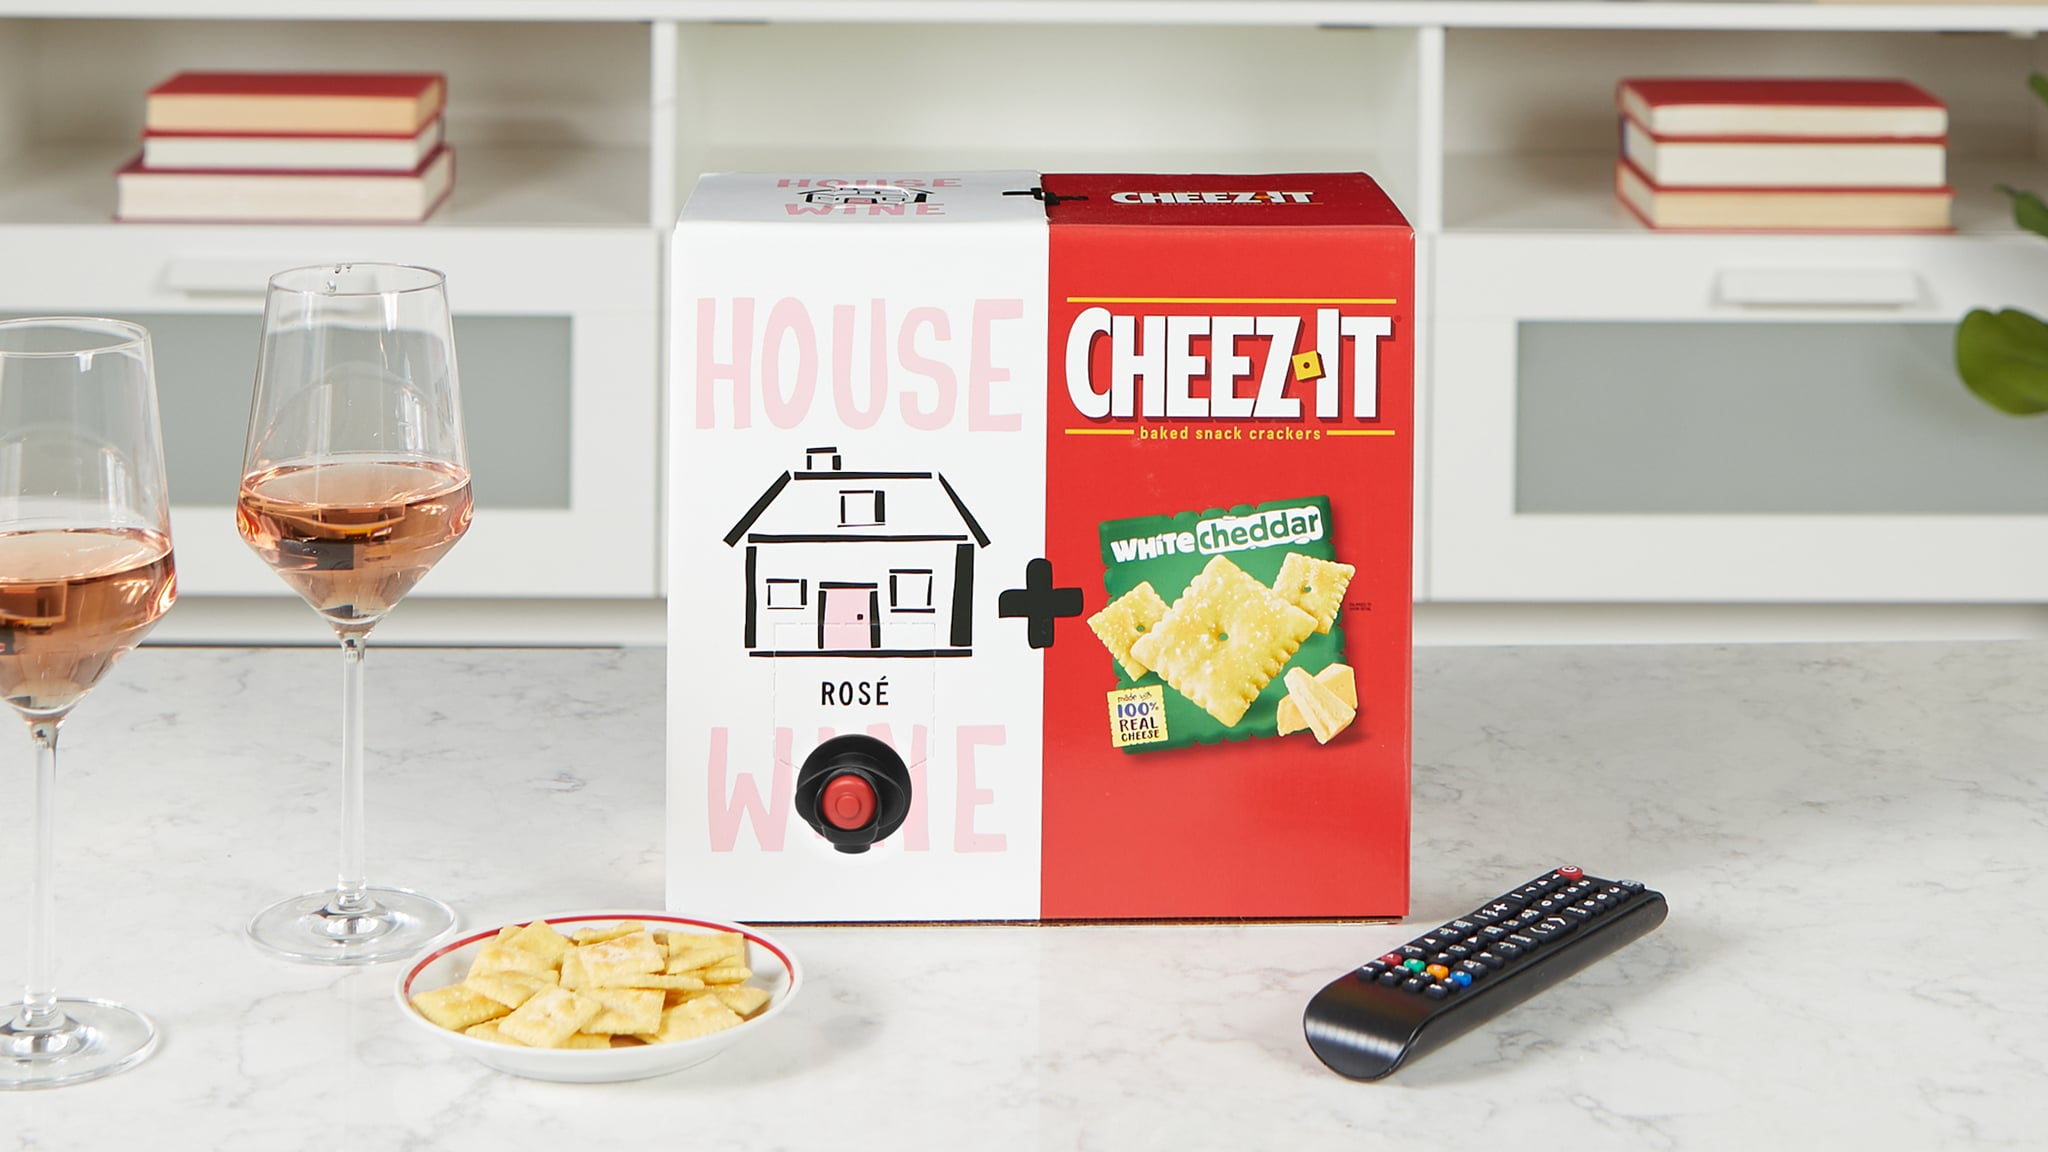 Wine and Cheez-It Boxes Are Back, and This Time They're Pairing White Cheddar With Rosé